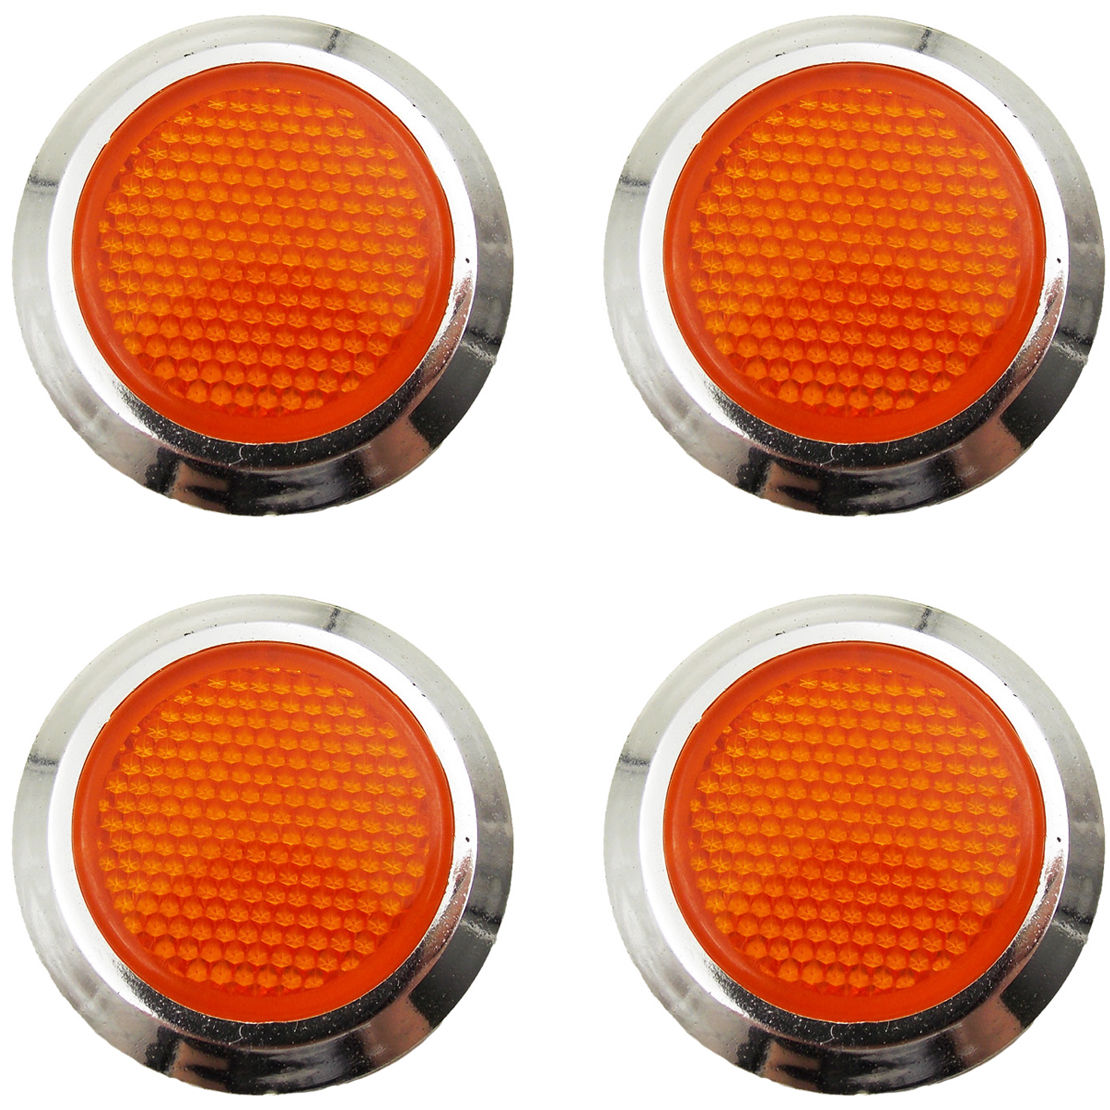 Amazing 4x Orange Reflective Car Motorcycle Sticker Reflector Round Chrome Self Adhesive 2018 2019